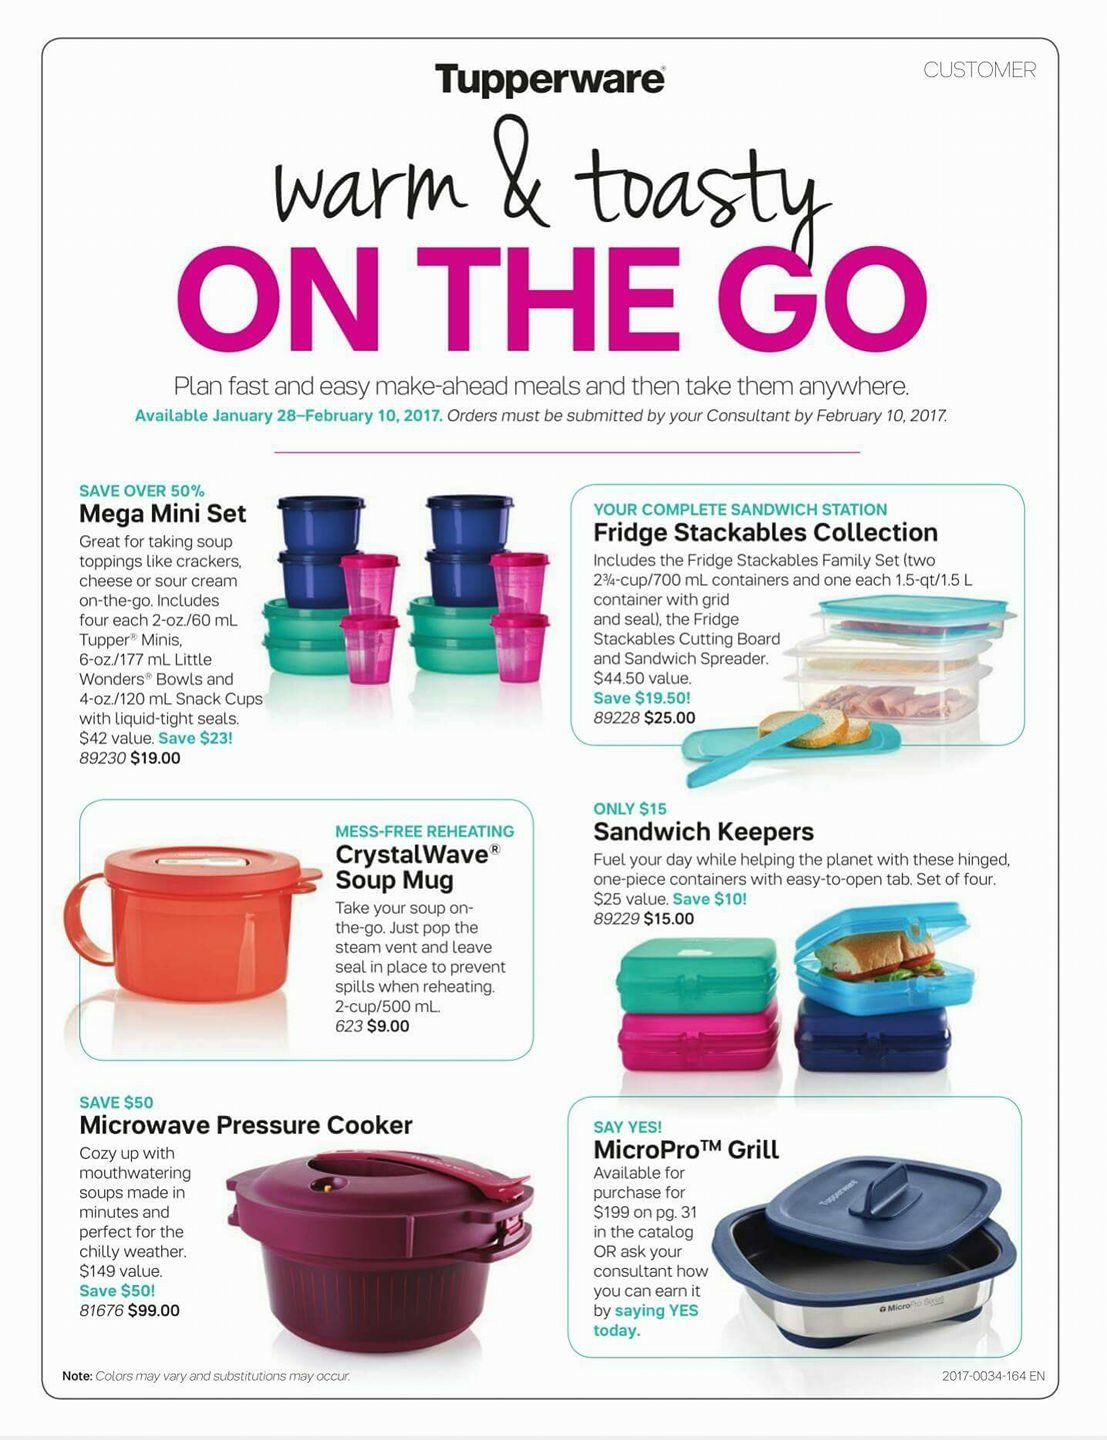 Tupperware for those on the move www my tupperware com cassiewhite